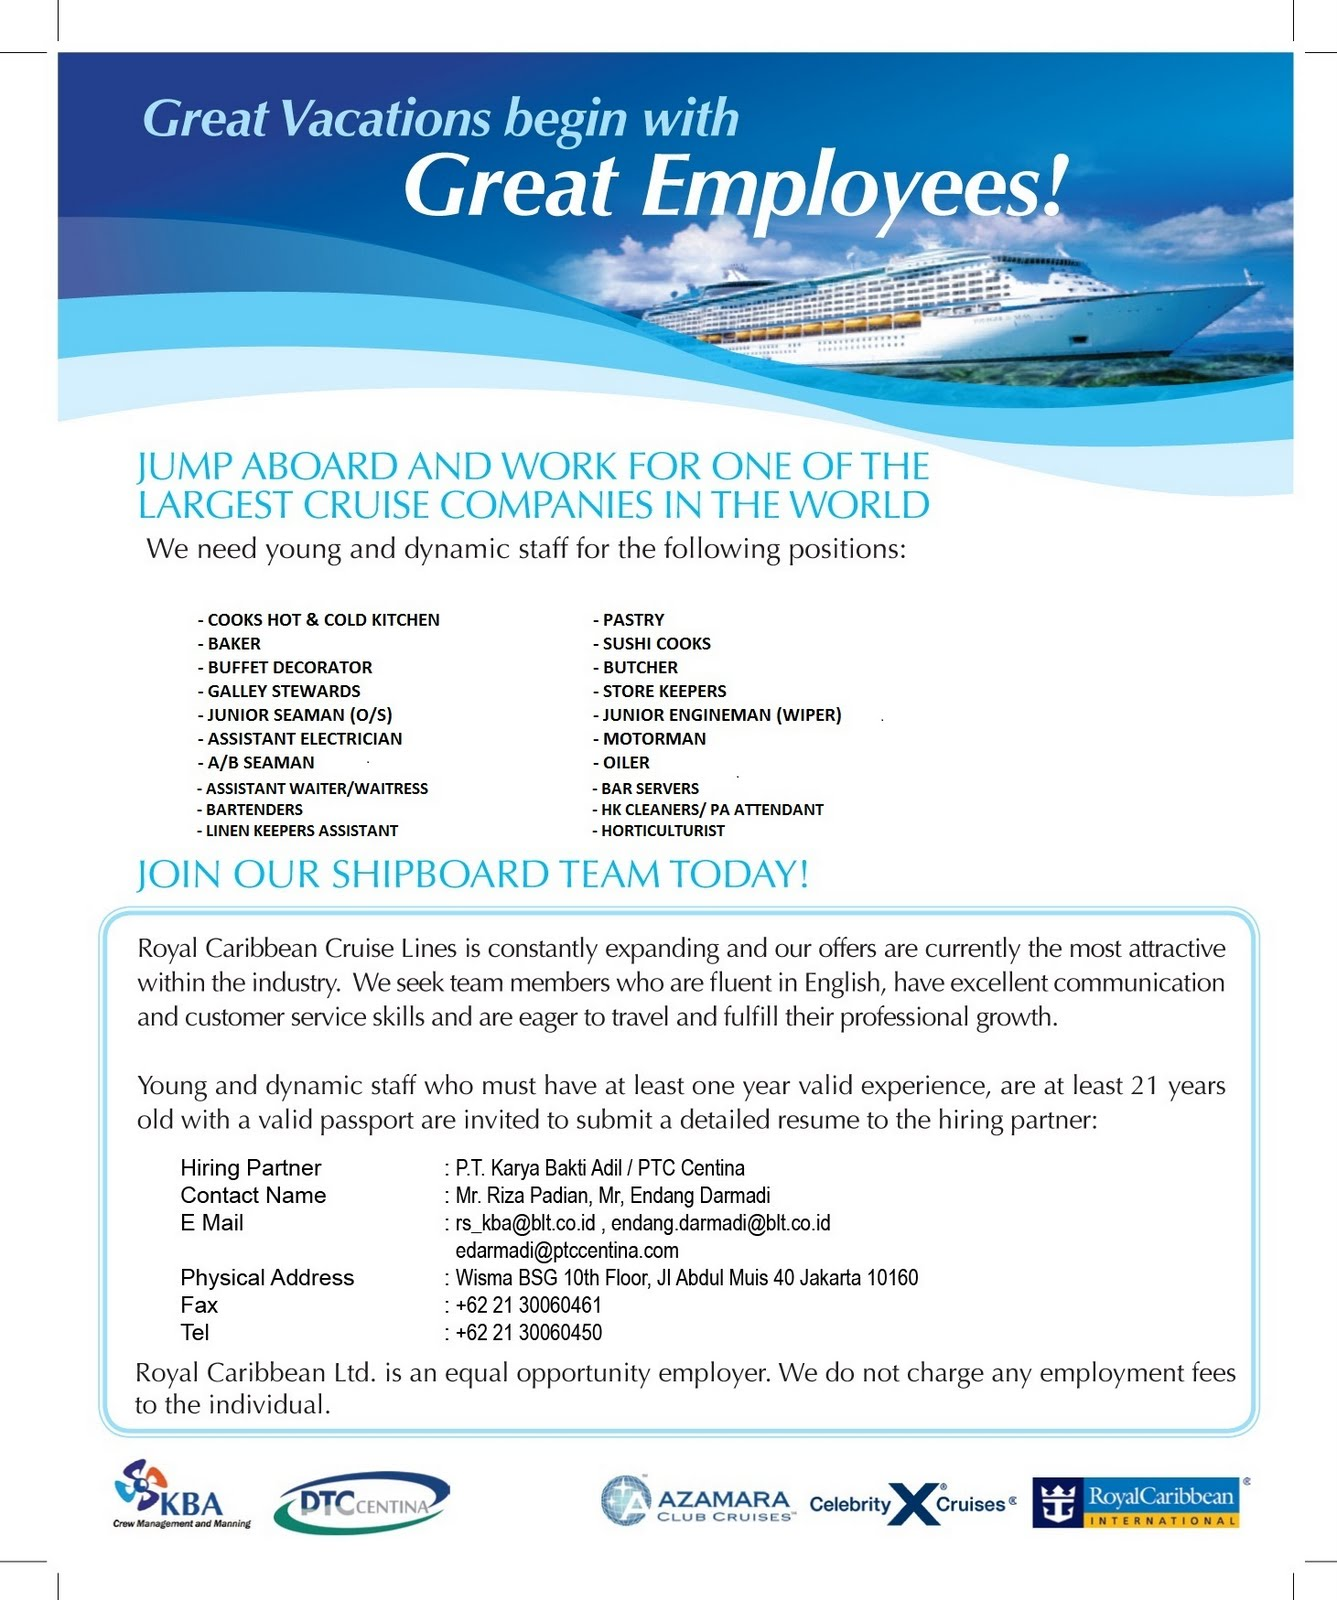 Open recruitment for royal caribbean and celebrity cruise lines open recruitment for royal caribbean and celebrity cruise lines falaconquin